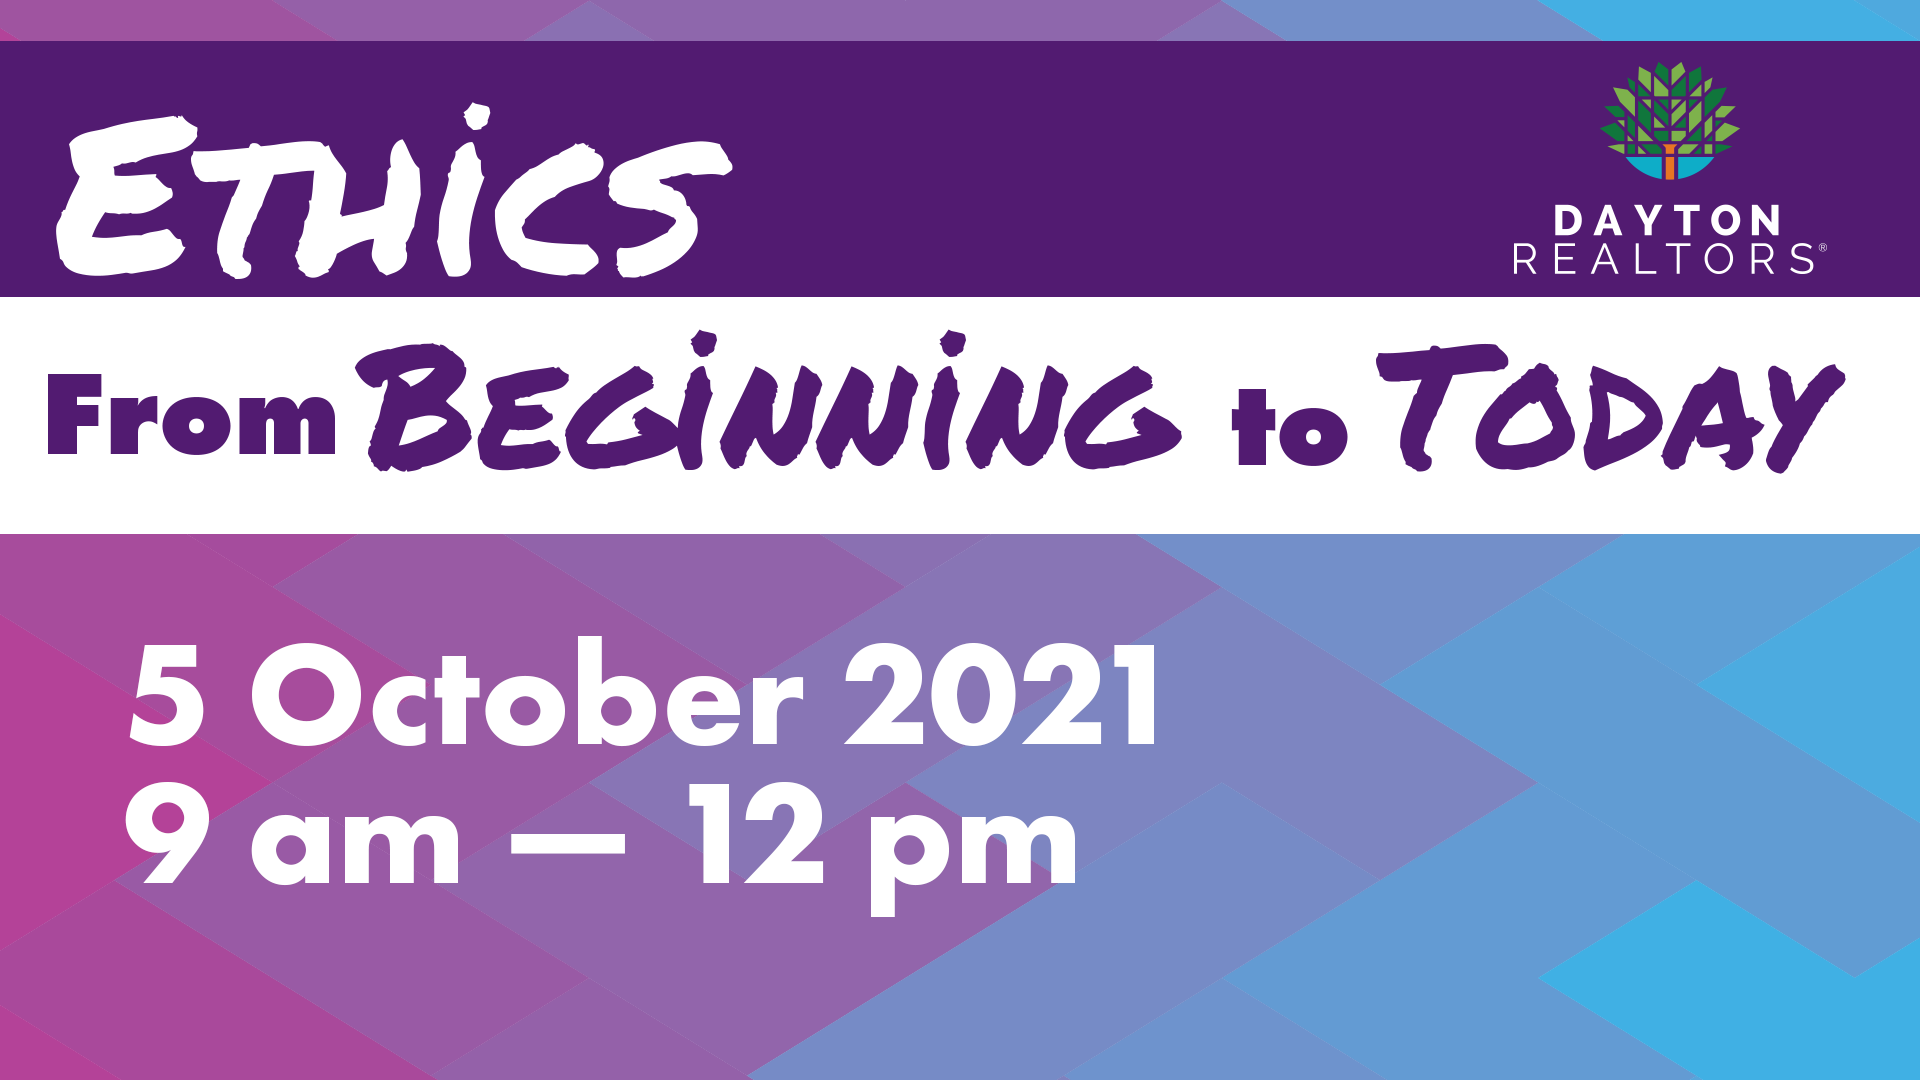 Ethics: From Beginning to Today, Oct. 5